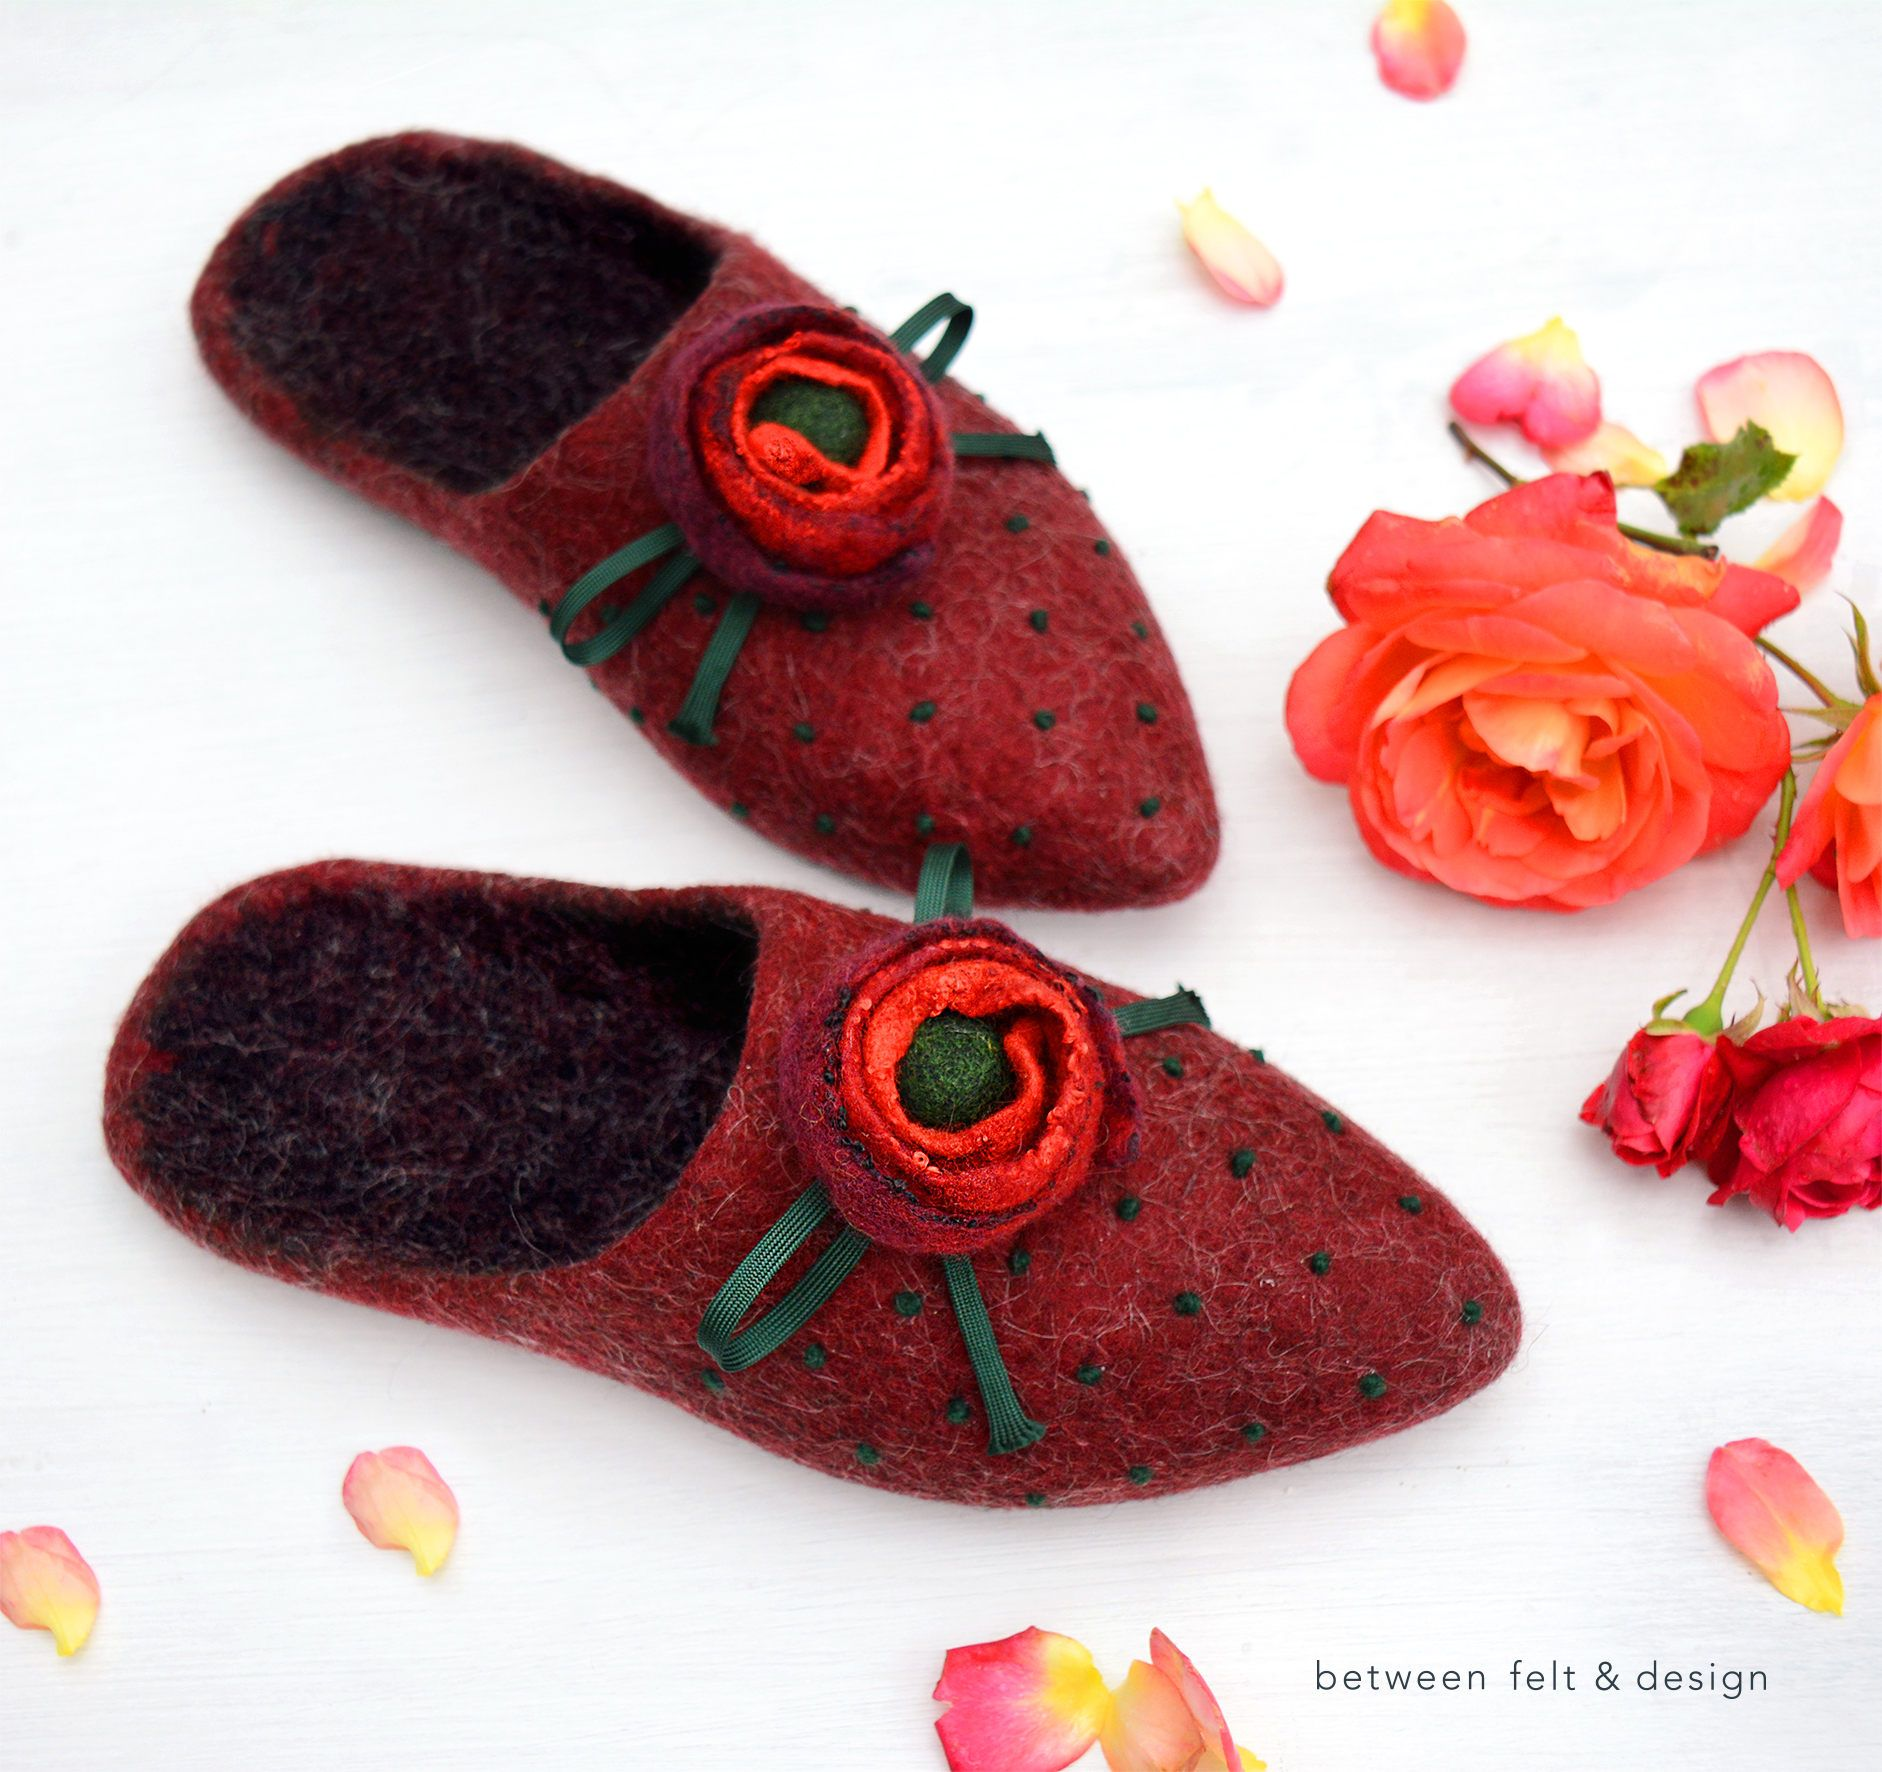 felted slippers pointy mules useful present natural wool slippers women accessories black friday christmas gift